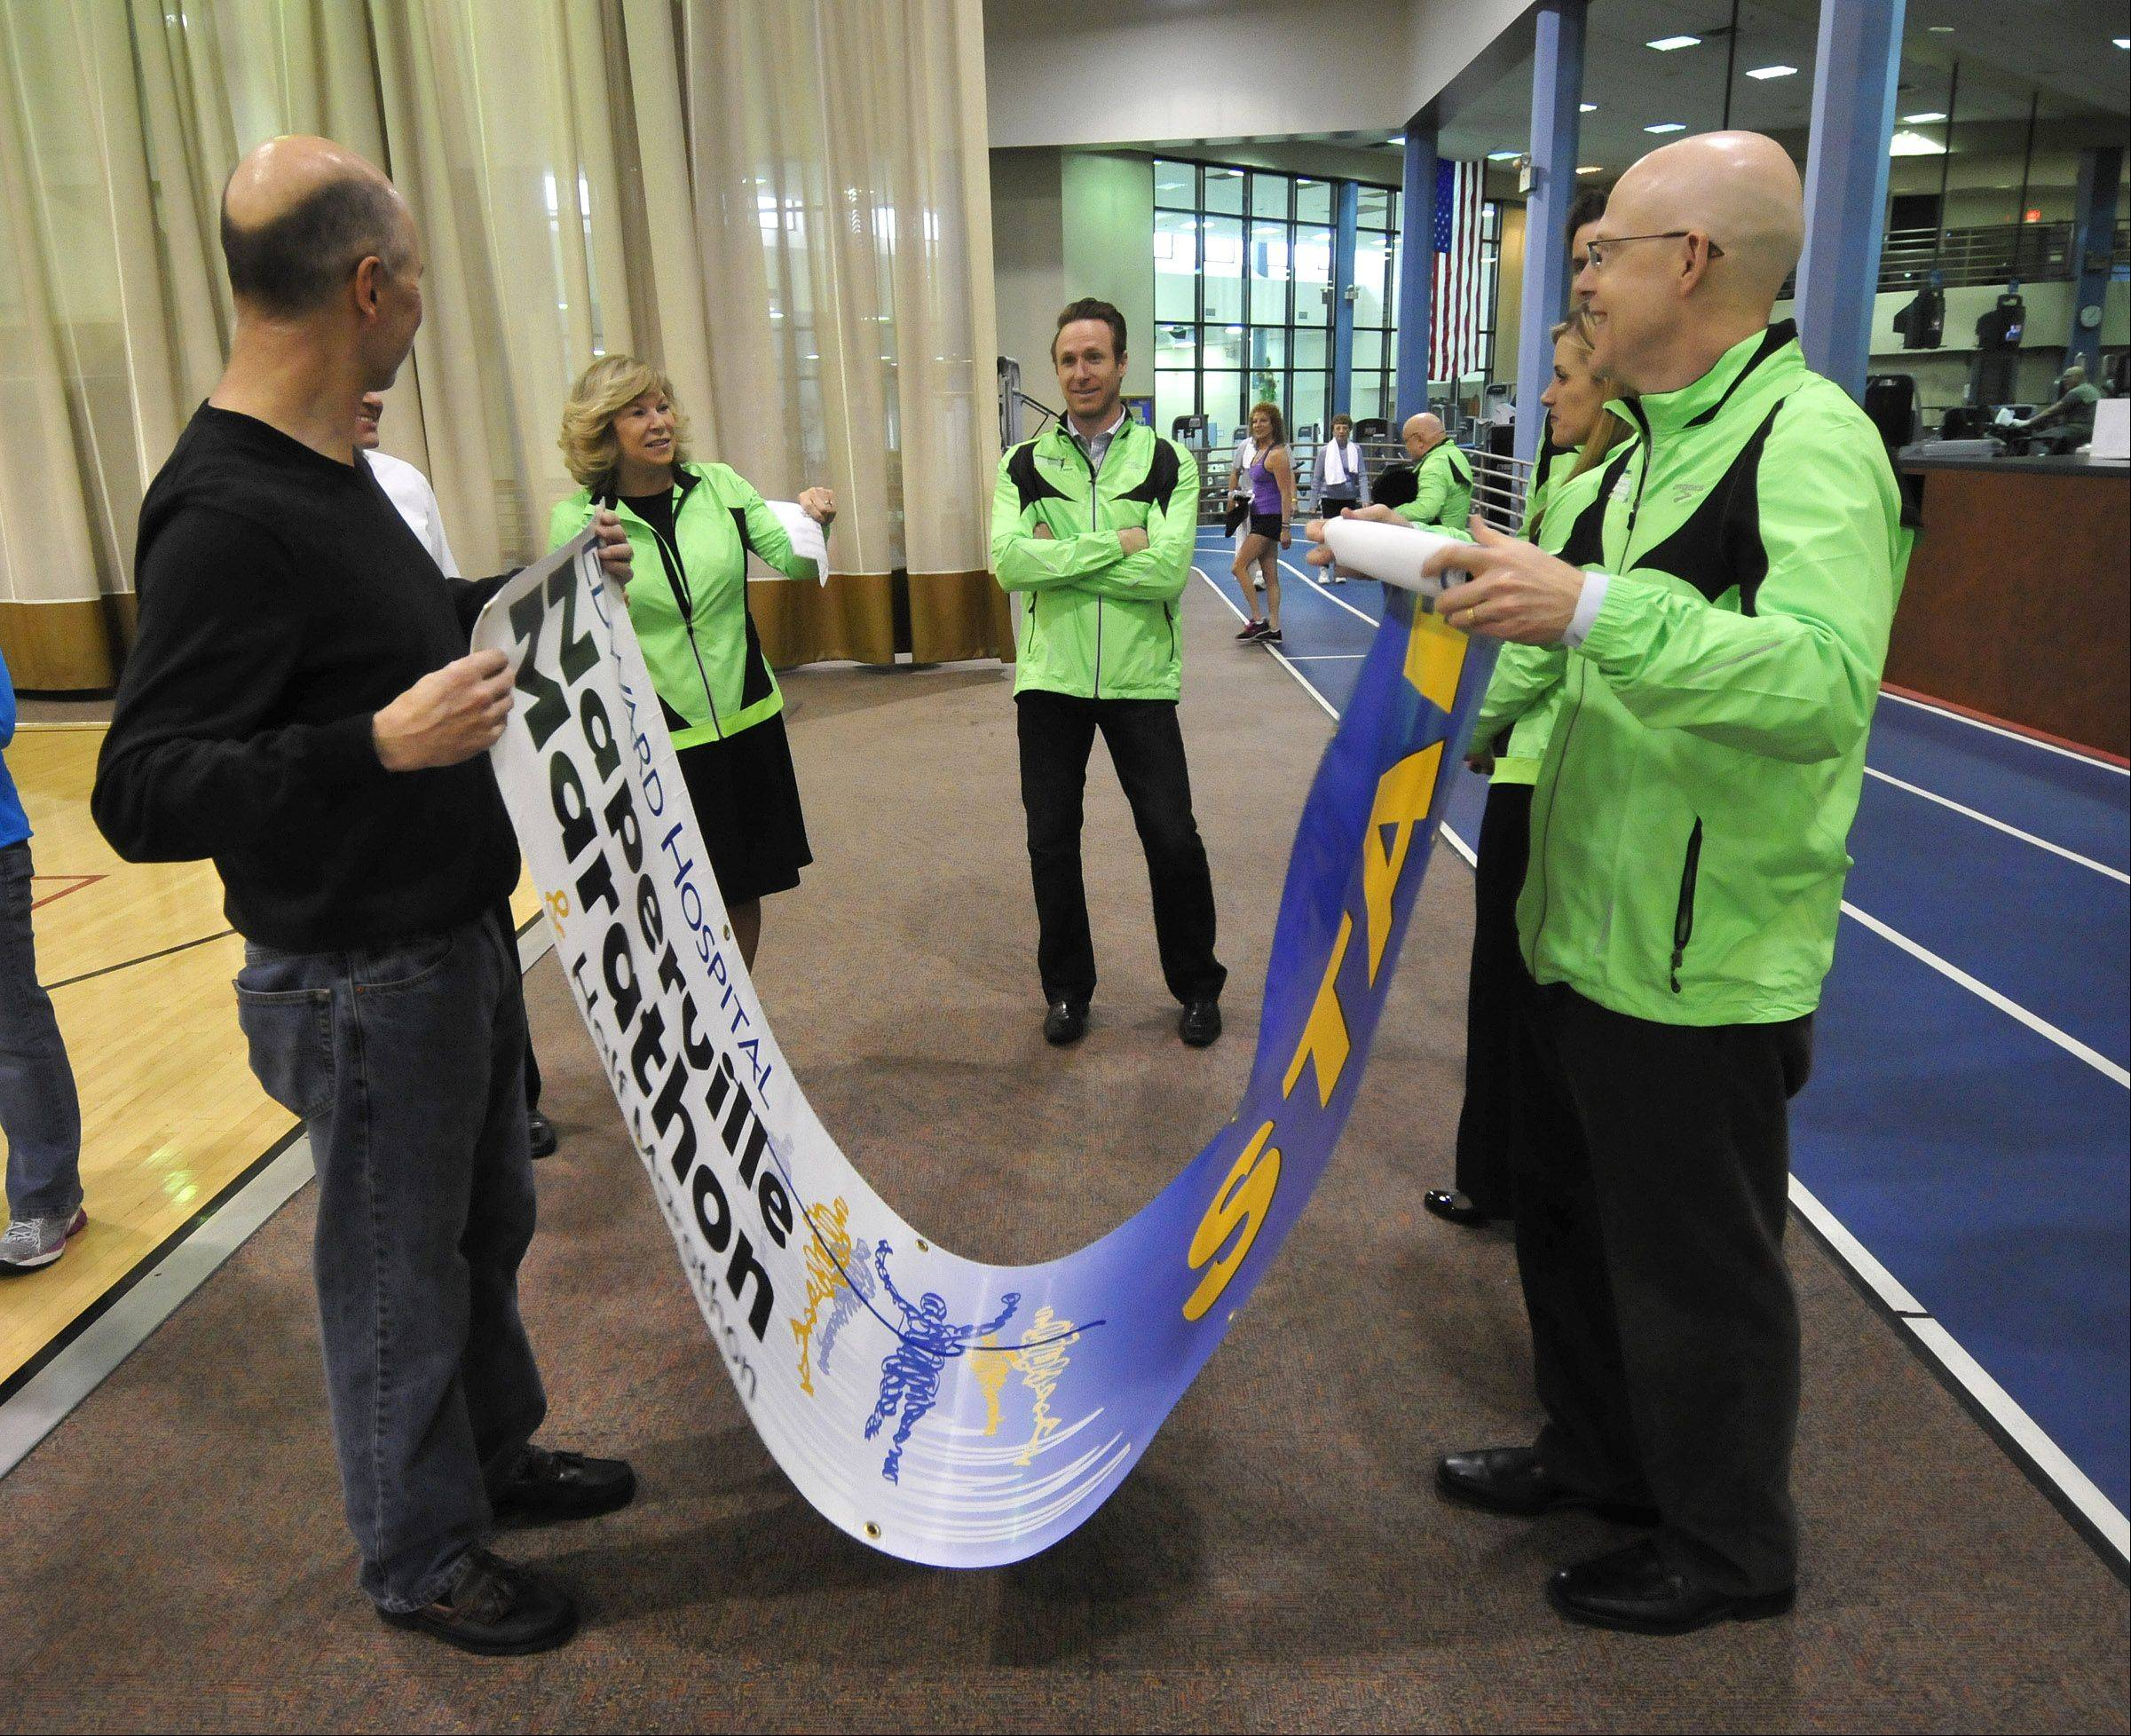 Edward Hospital President & CEO Pam Davis, second from left, comments on the banner that will be placed at the start of Naperville's inaugural marathon this fall.